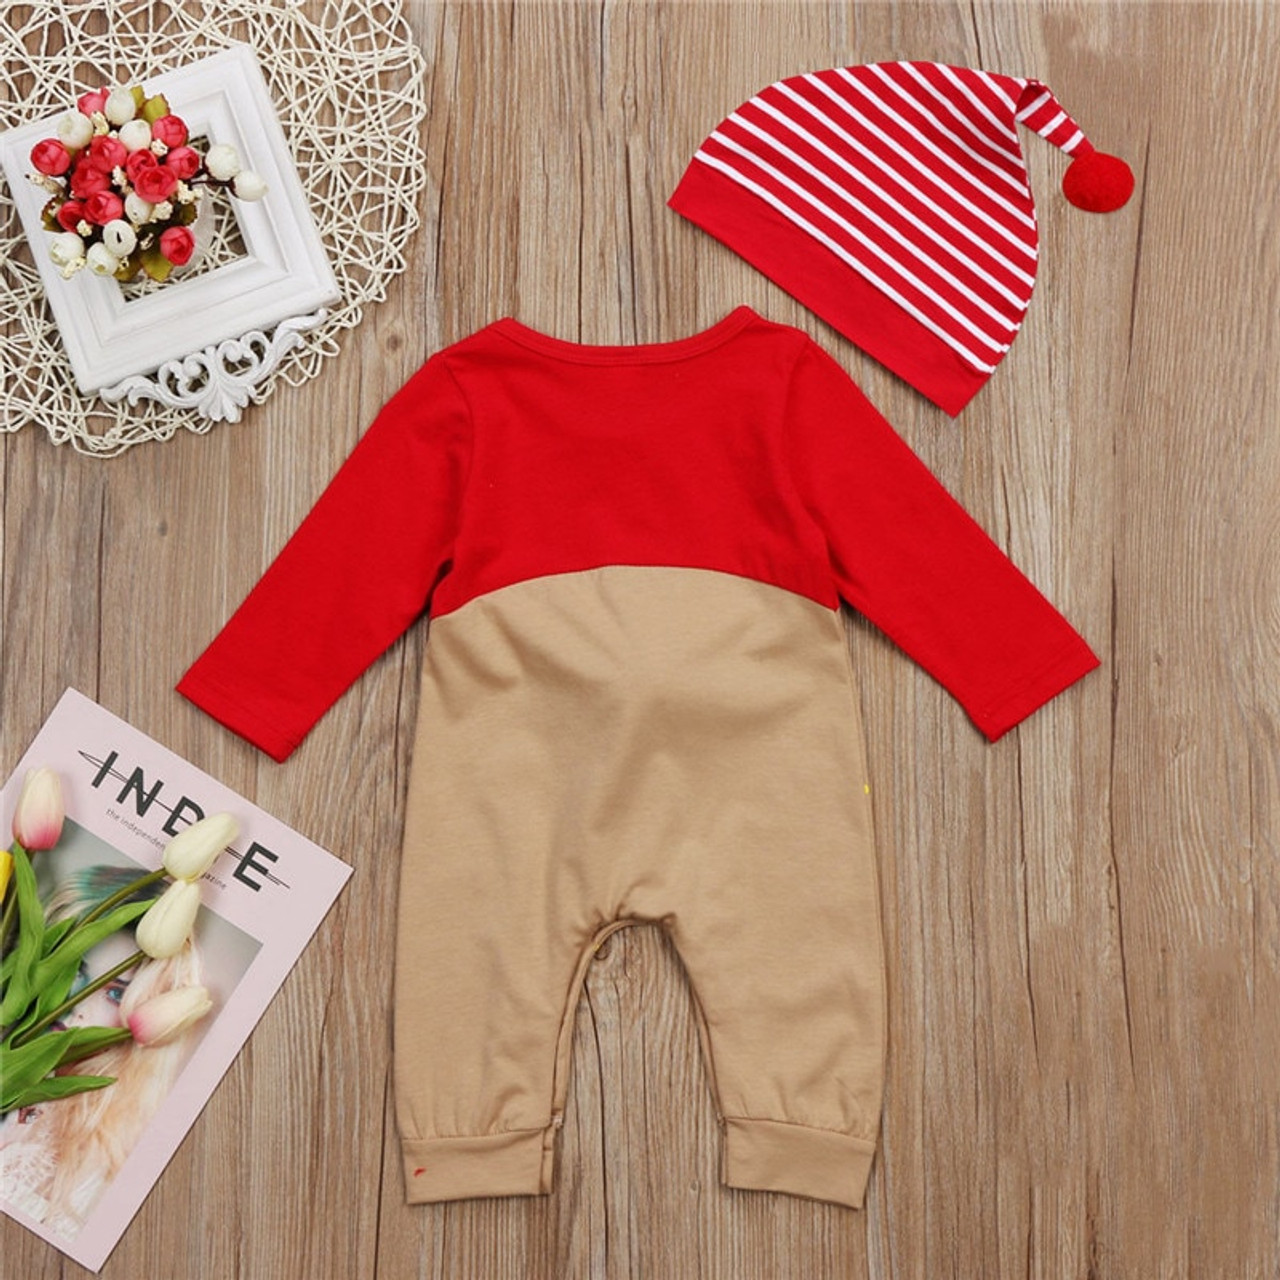 b06be3393e498 Cute Newborn Baby Rompers Cotton Long Sleeve CartoonToddler Jumpsuit Infant  Christmas Clothes Baby Boys Girls Clothing